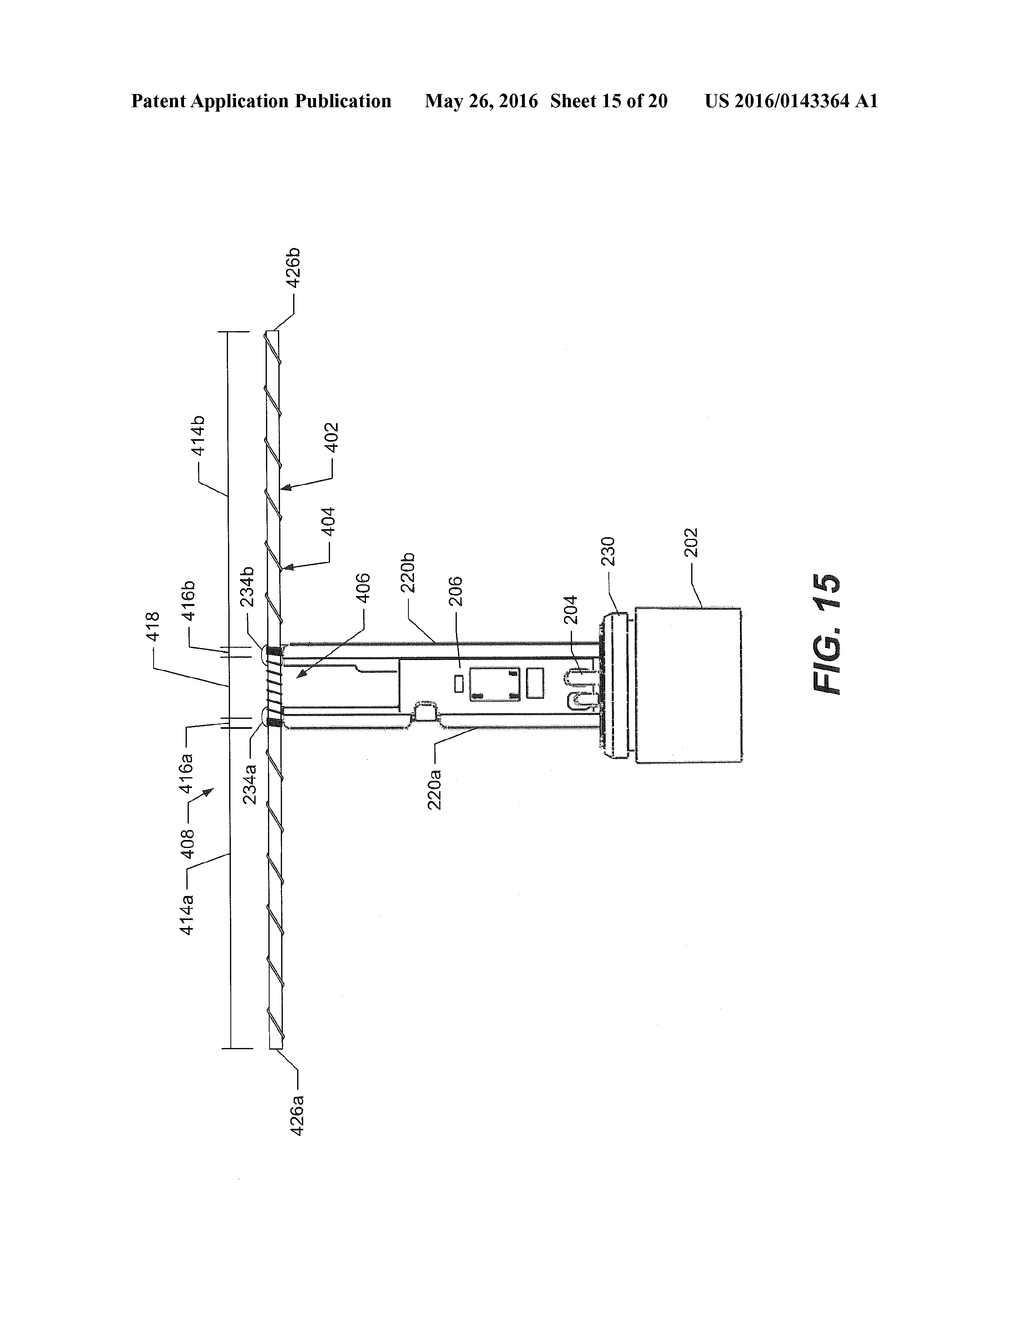 hight resolution of atomizer for an aerosol delivery device formed from a continuously extending wire and related input cartridge and method diagram schematic and image